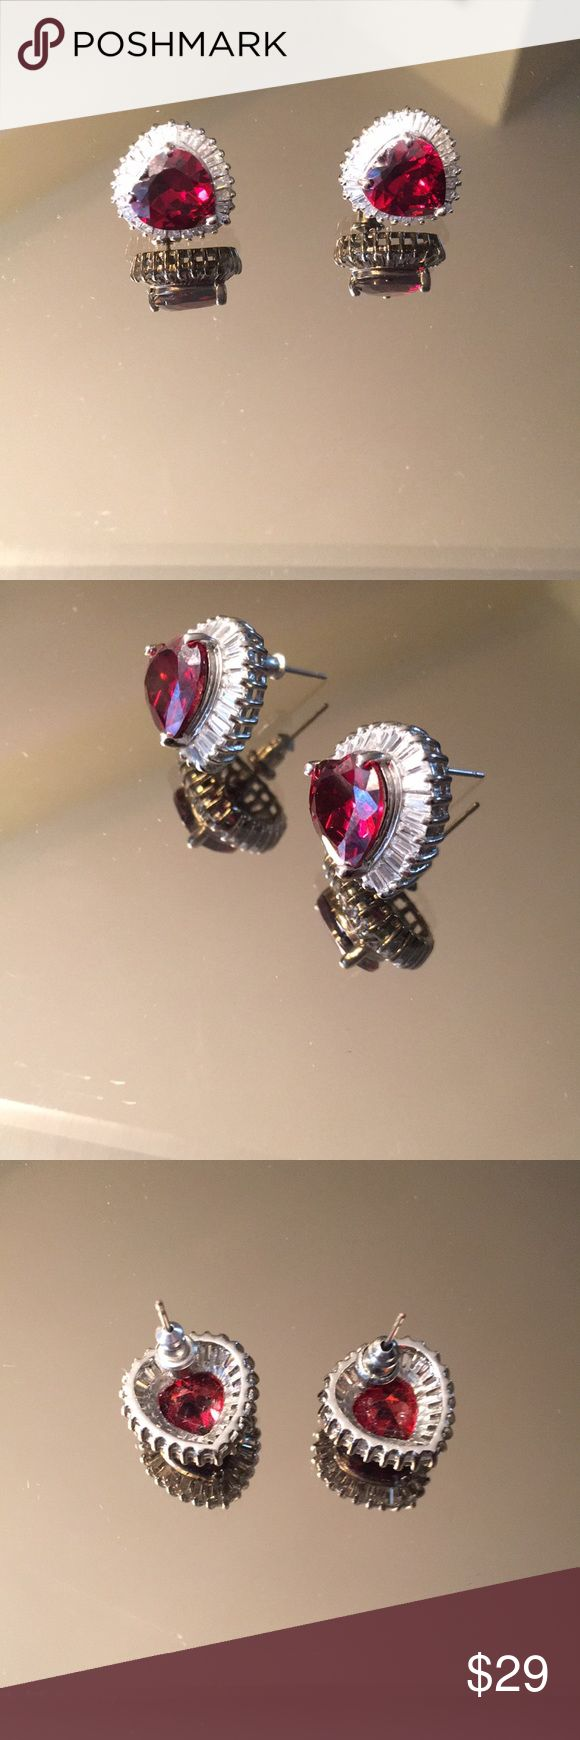 🦋LOVELY PIERCED EARRINGS LOVELY HEART SHAPED PIERCED EARRINGS.  STUNNING STYLISH AND ALWAYS ON TREND.   CUBIC ZIRCONIA AND RED HEART SHAPED STONE   PURCHASED AT NEIMAN MARCUS Jewelry Earrings